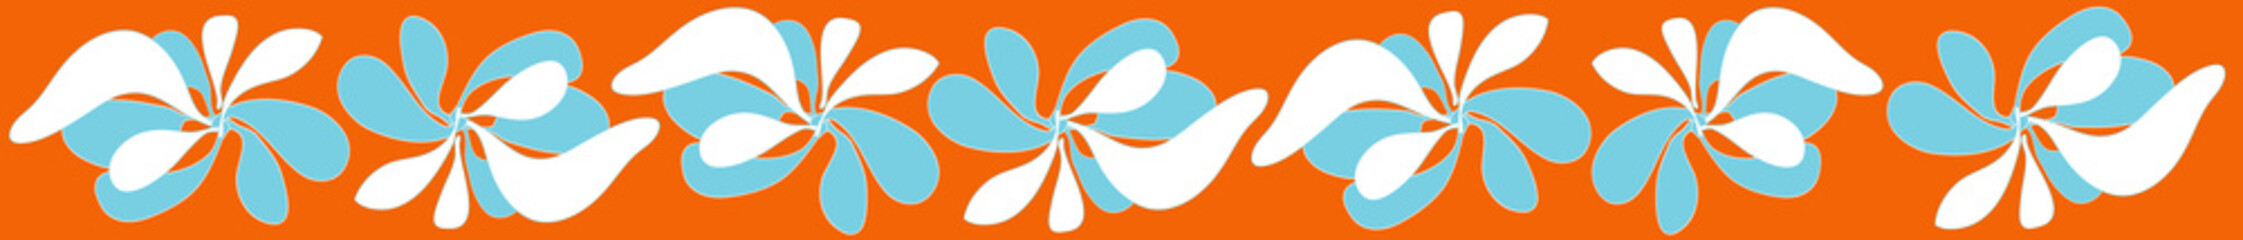 threading graphic flower orange background